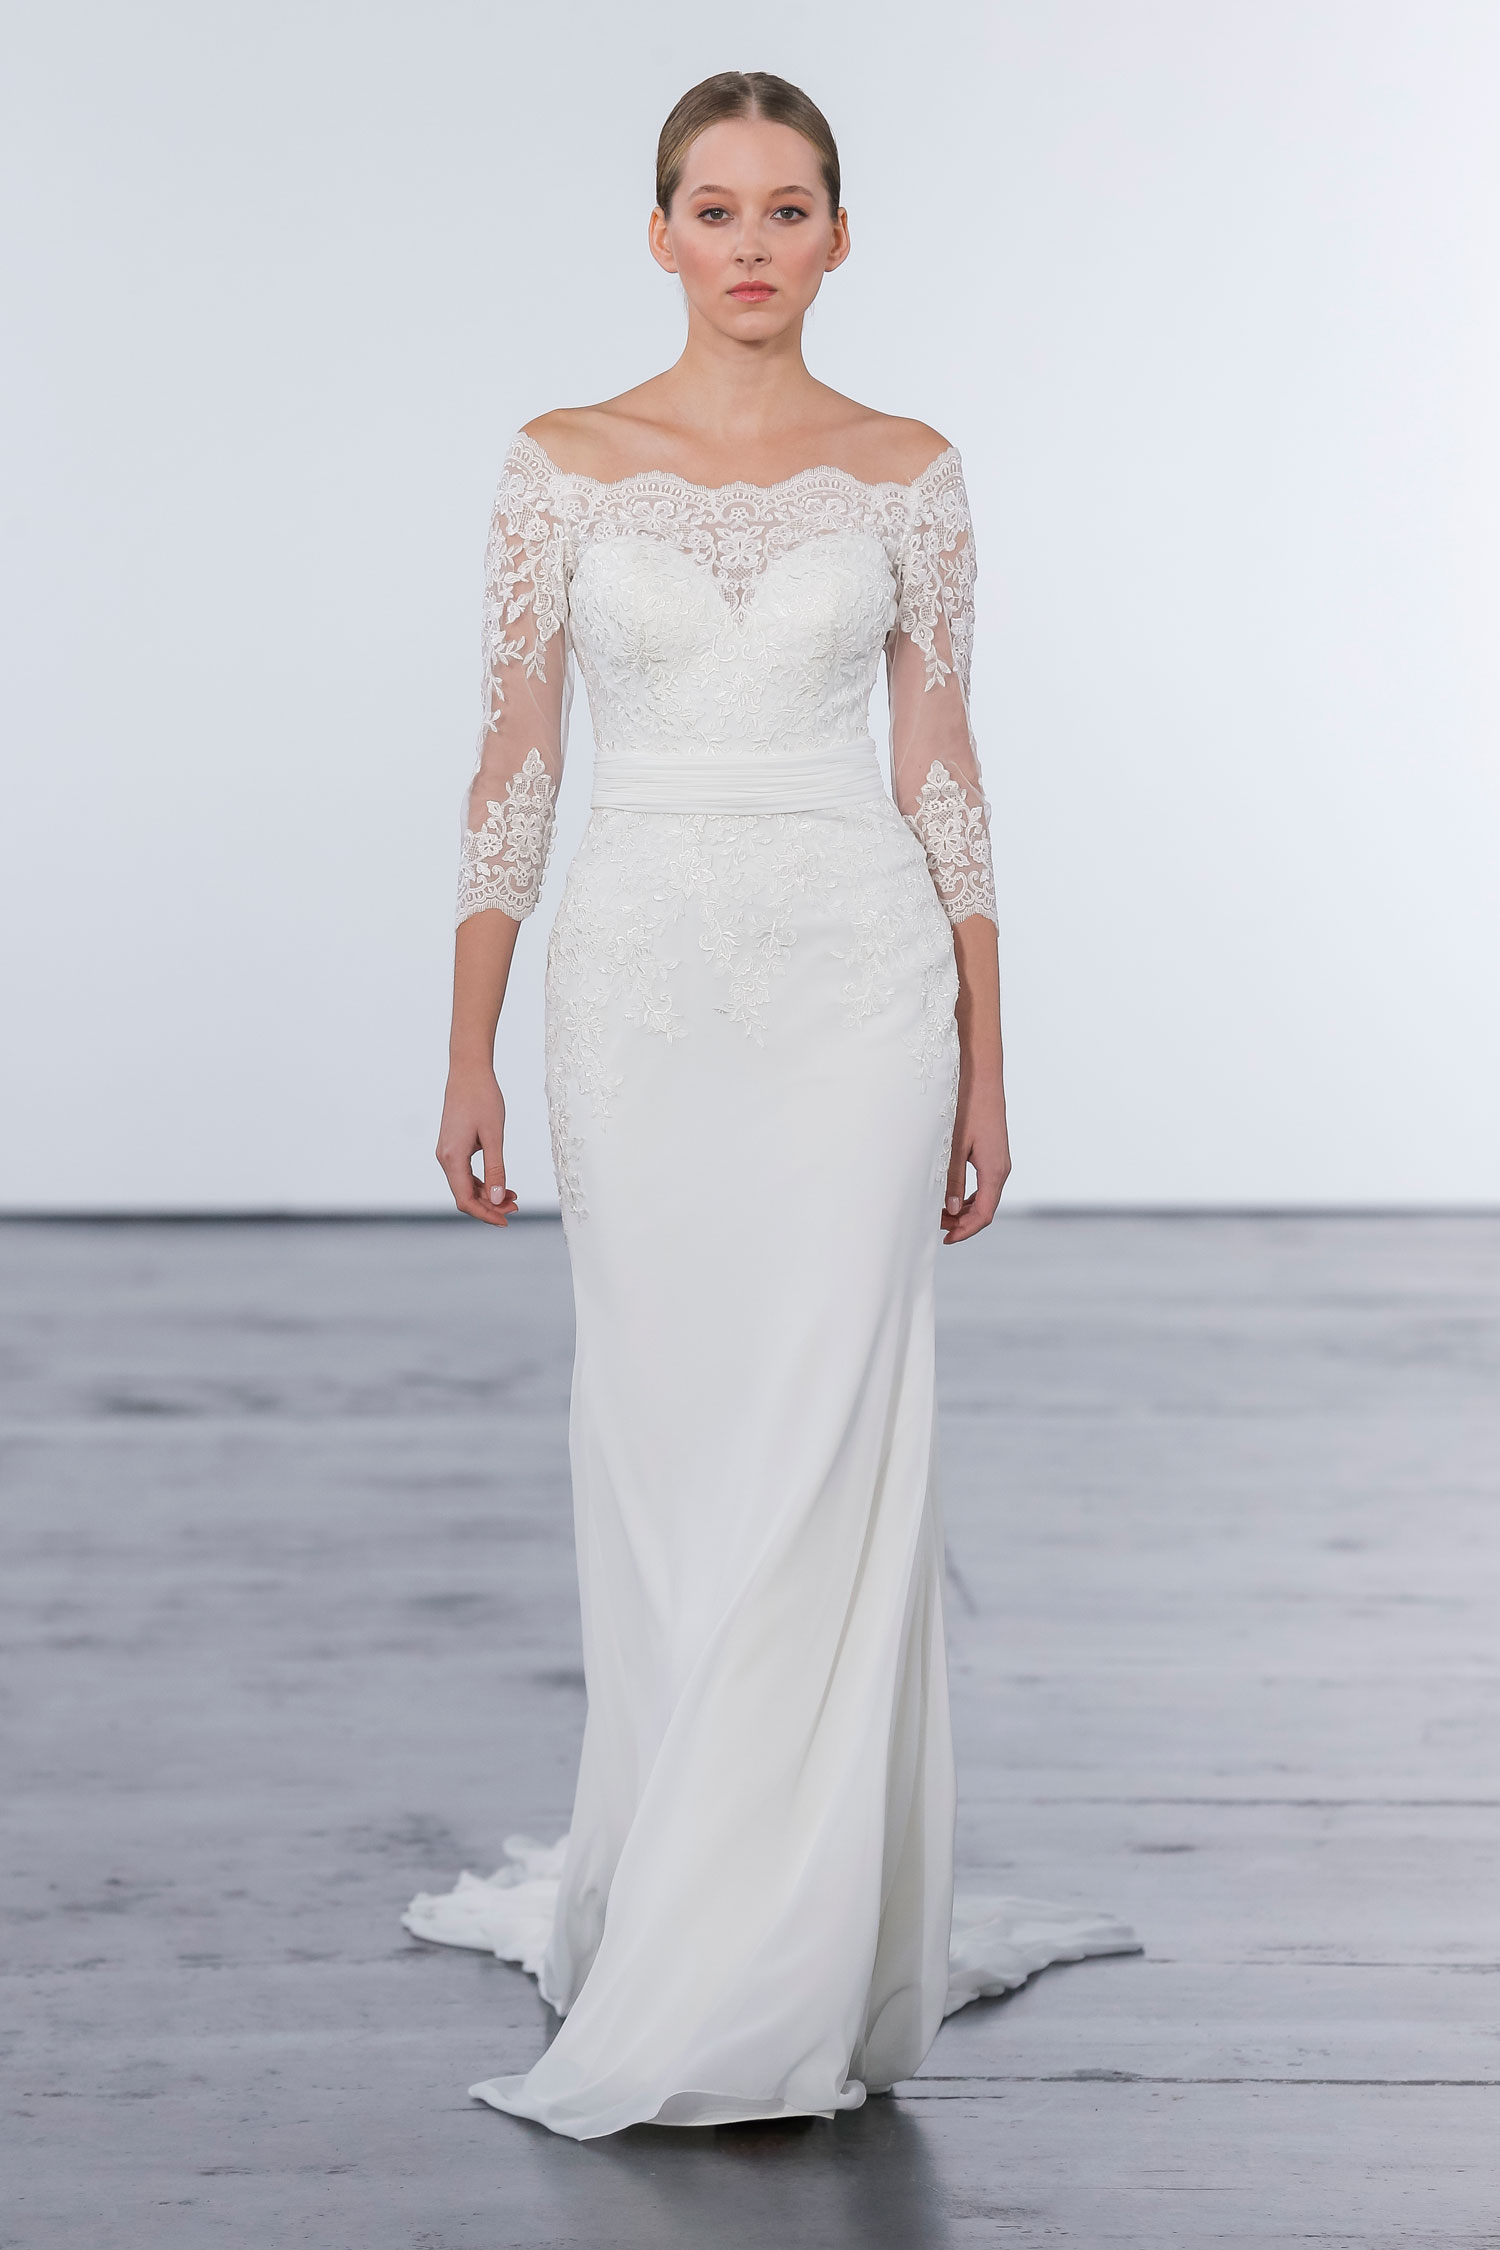 Fifty Shades of Grey Wedding Dresses